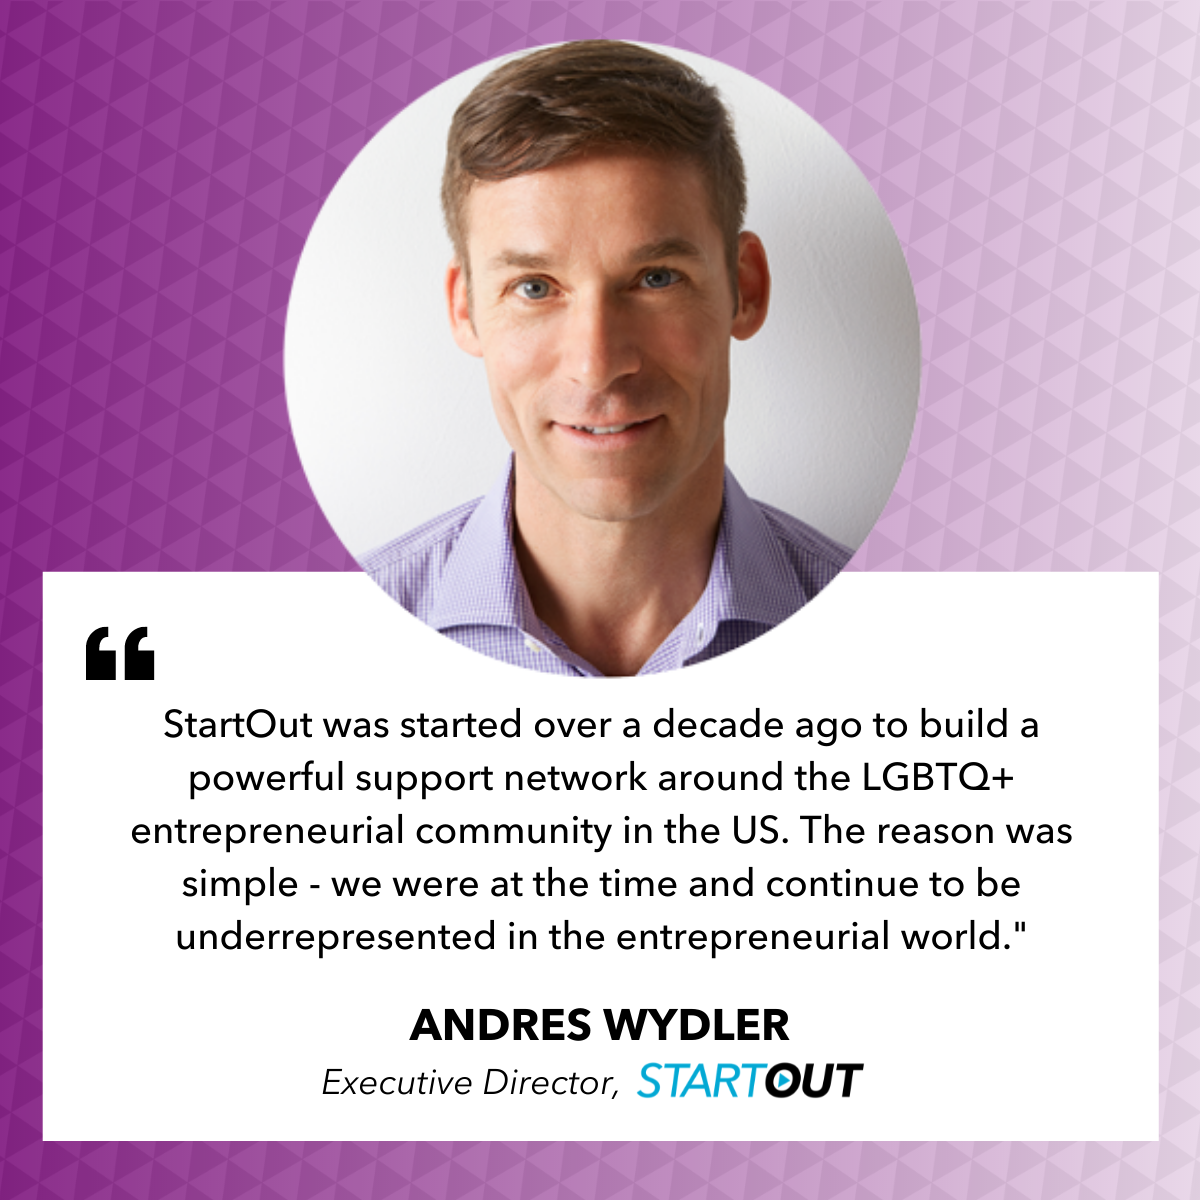 Andres Wydler executive director of startout quote card